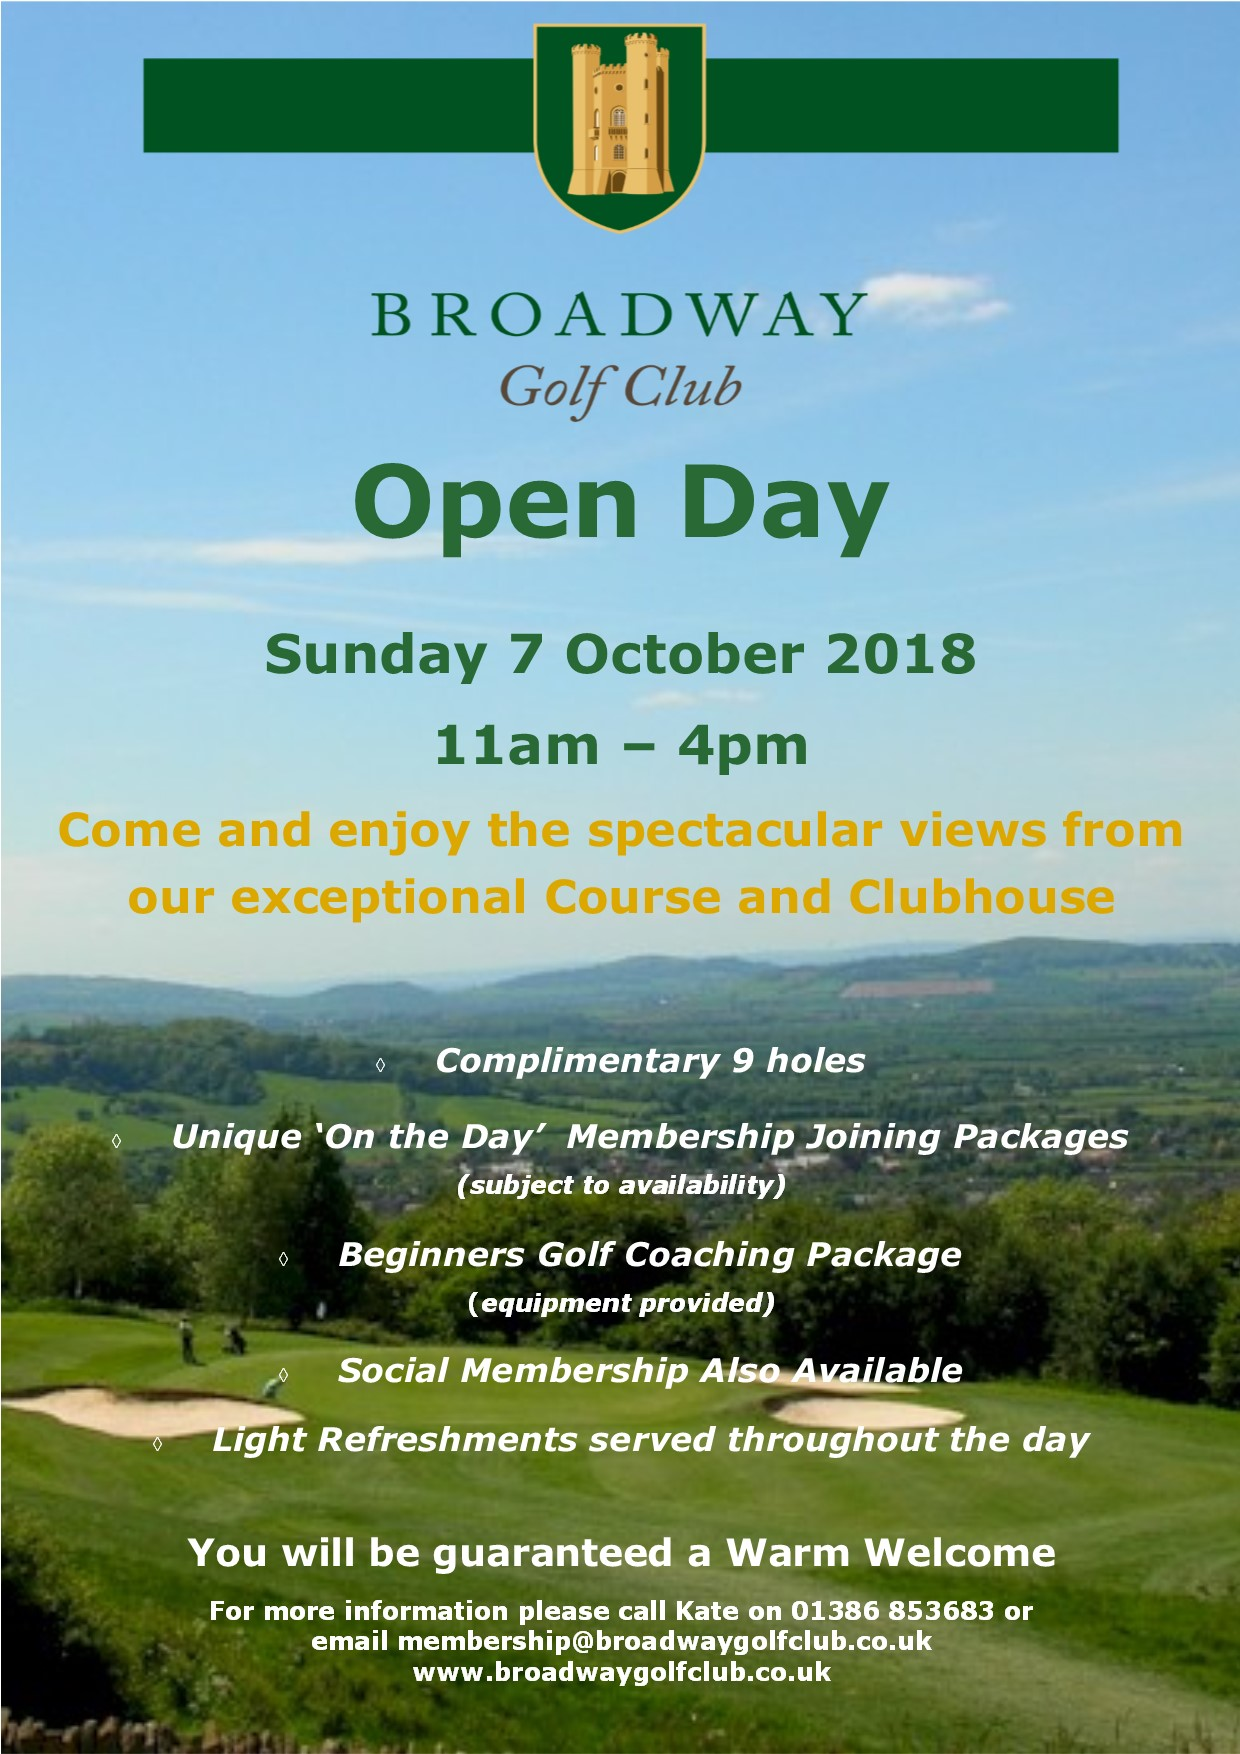 Broadway Golf Club Open Day